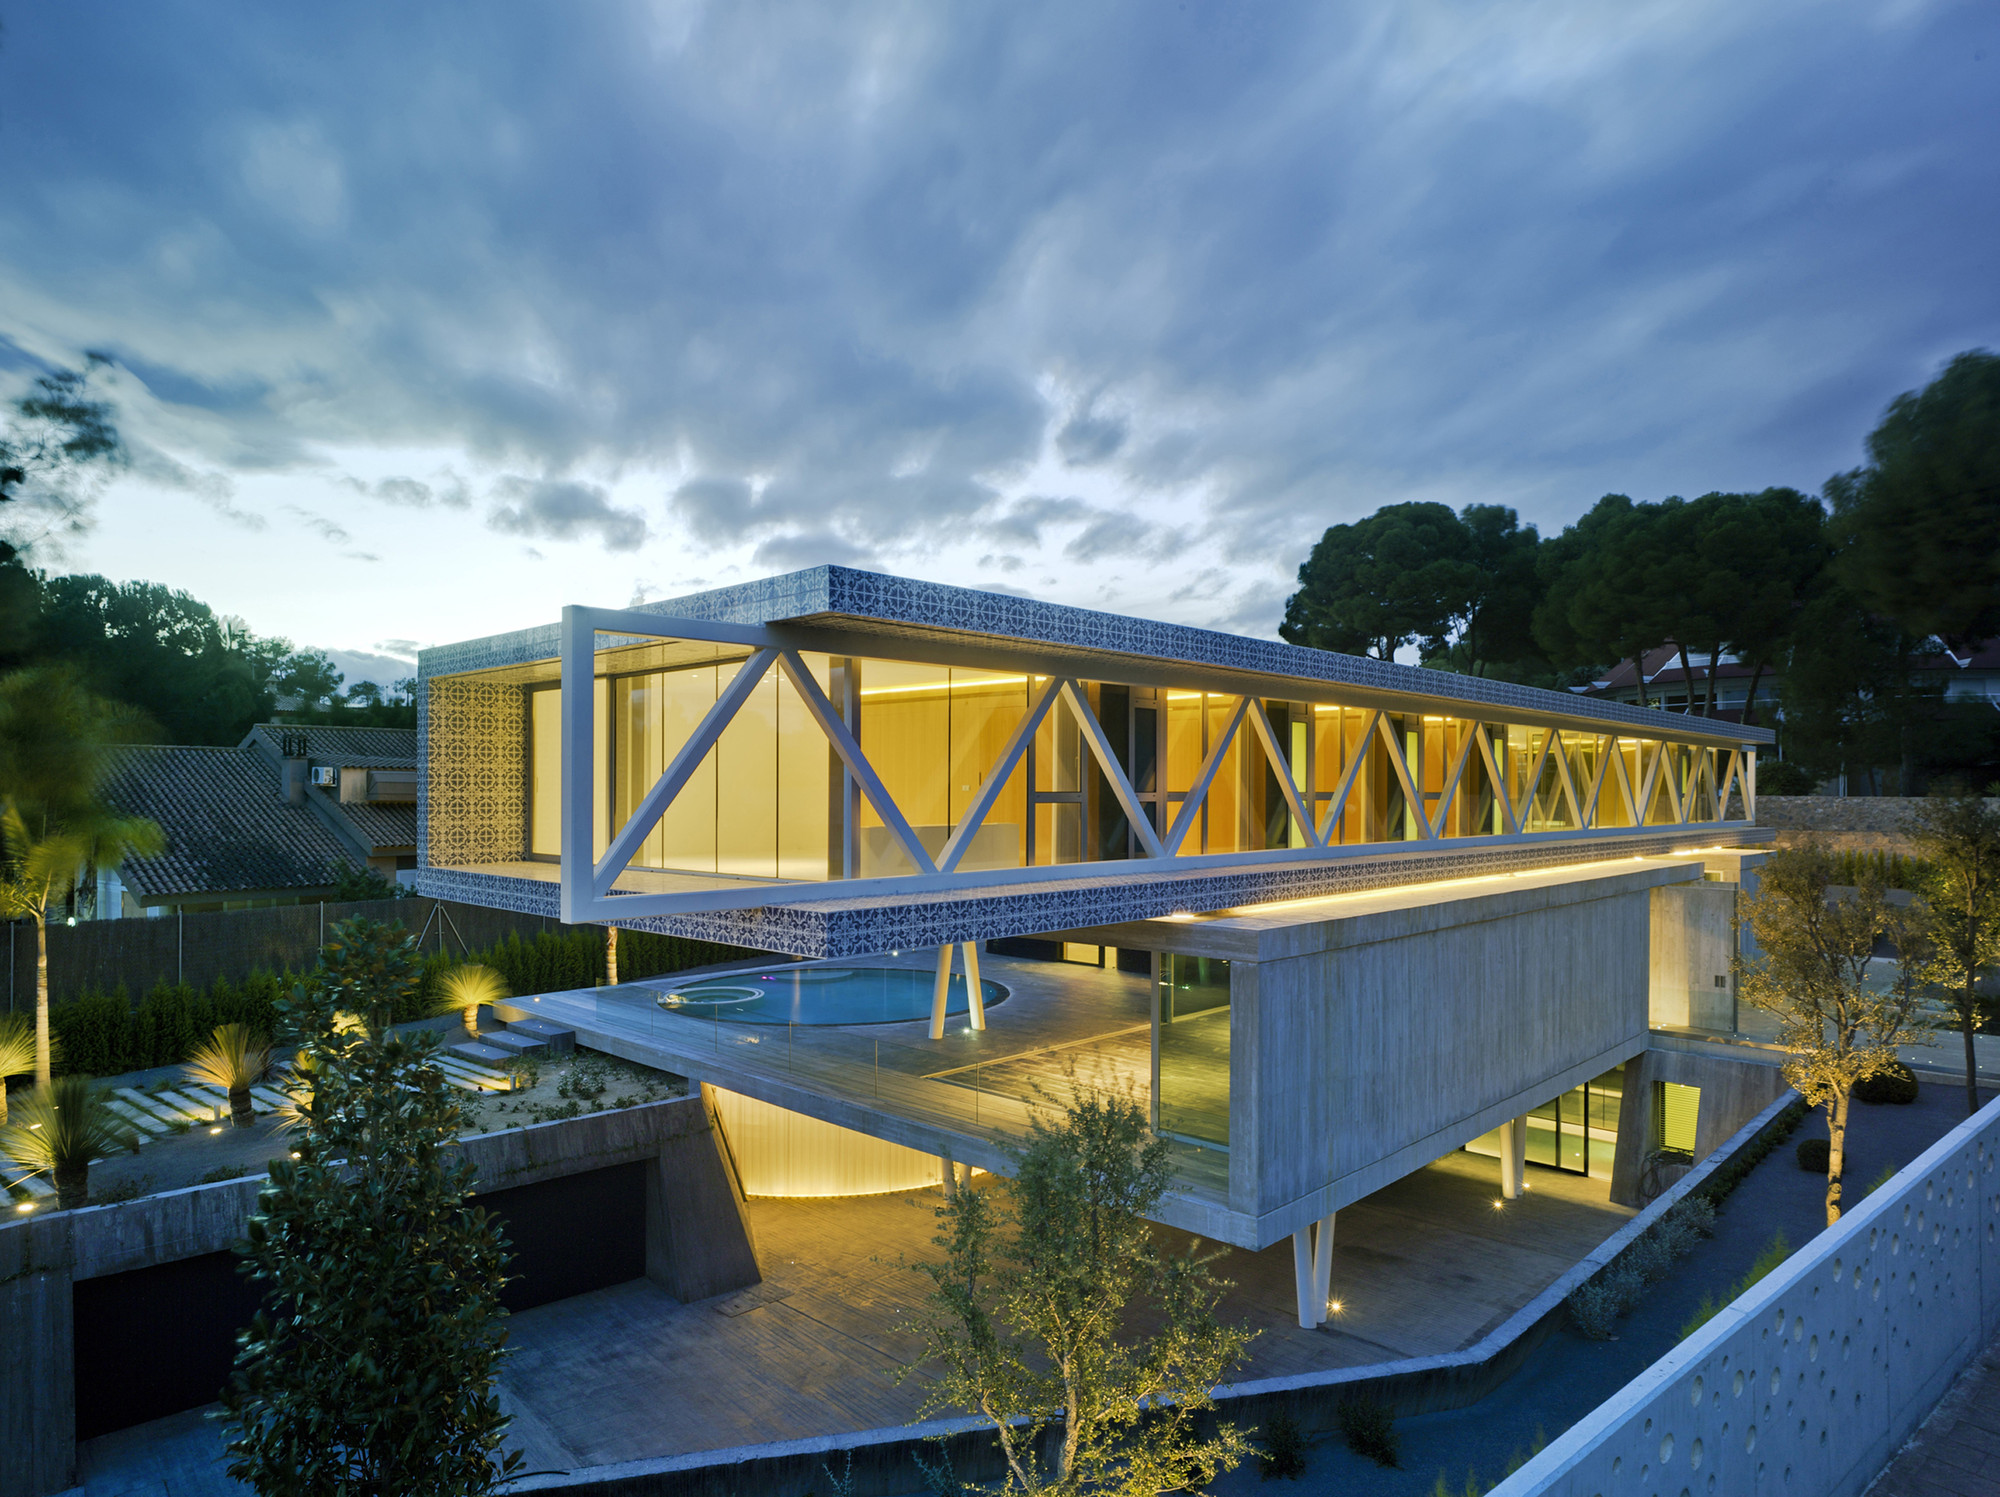 4 IN 1 HOUSE / Clavel Arquitectos, © David Frutos-Ruiz